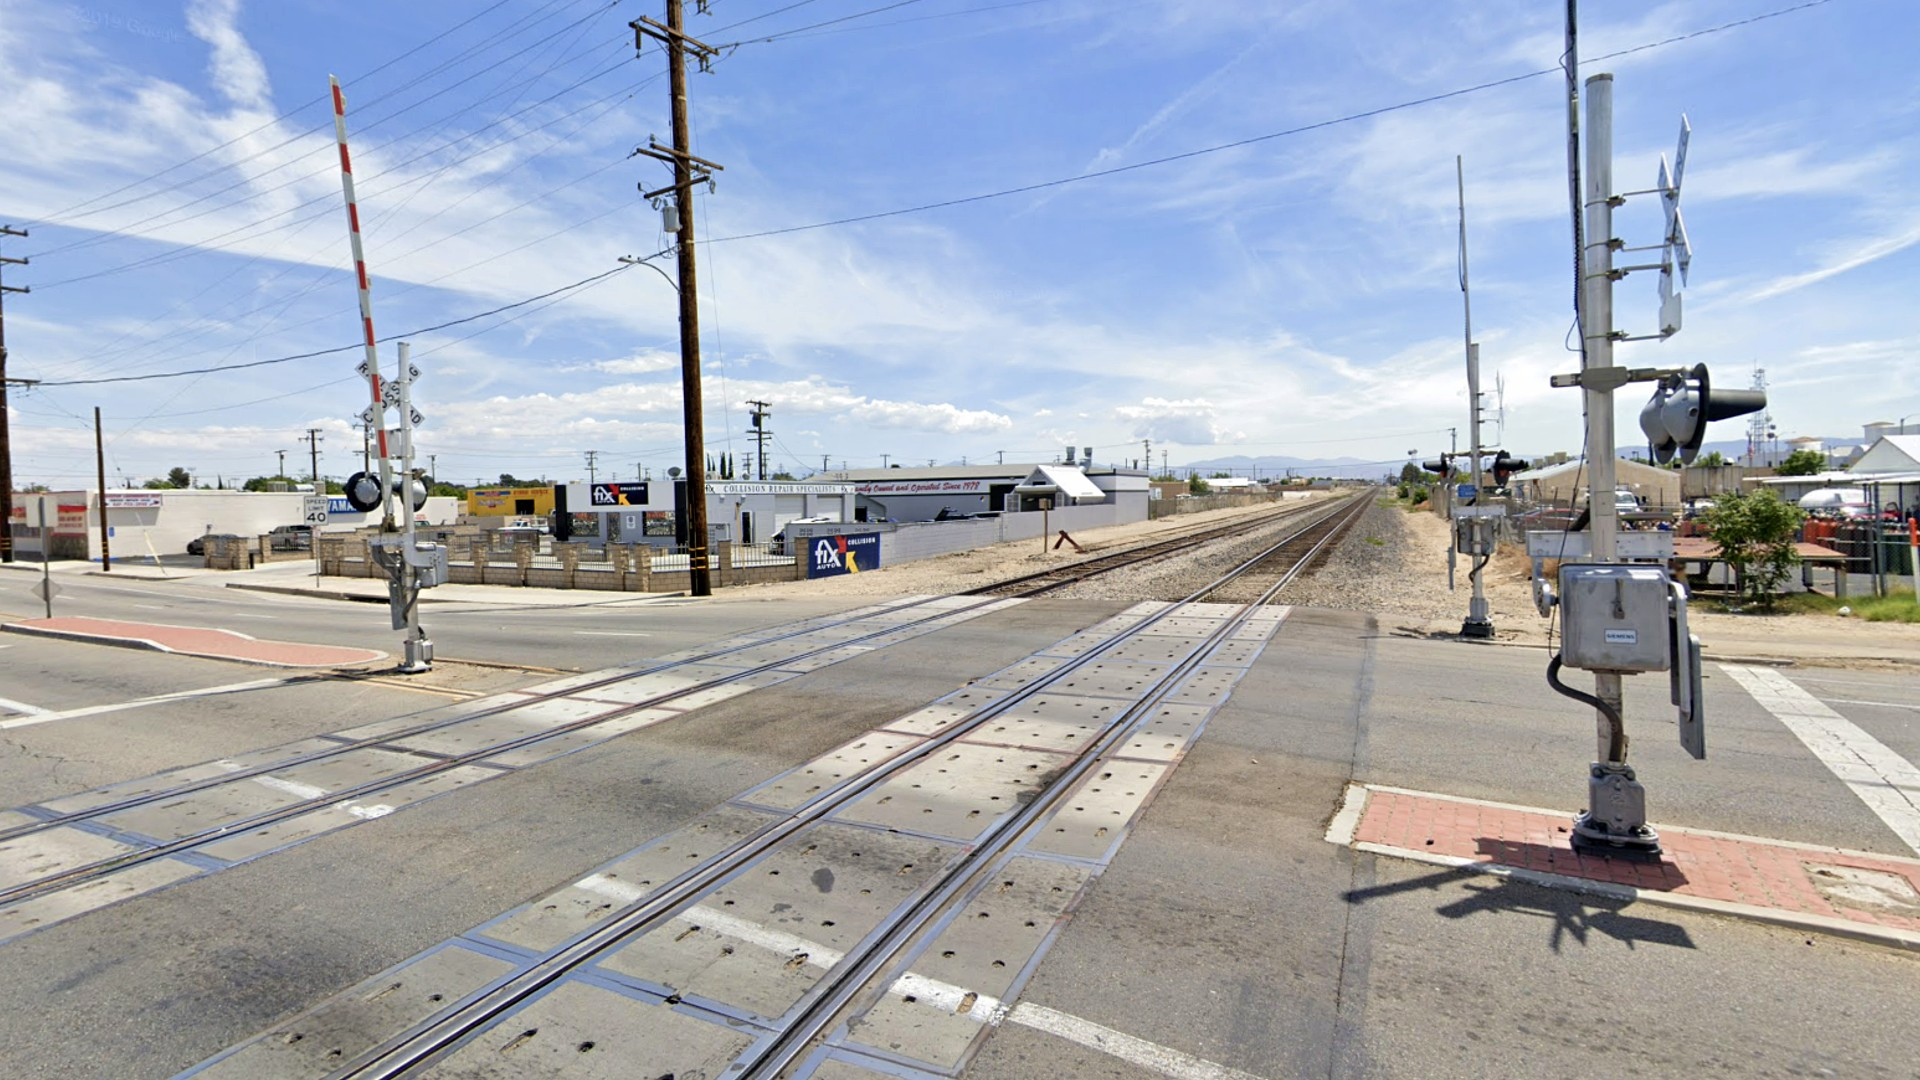 The train crossing on West Avenue I near Sierra Highway in Lancaster is seen in this image from Google Maps.